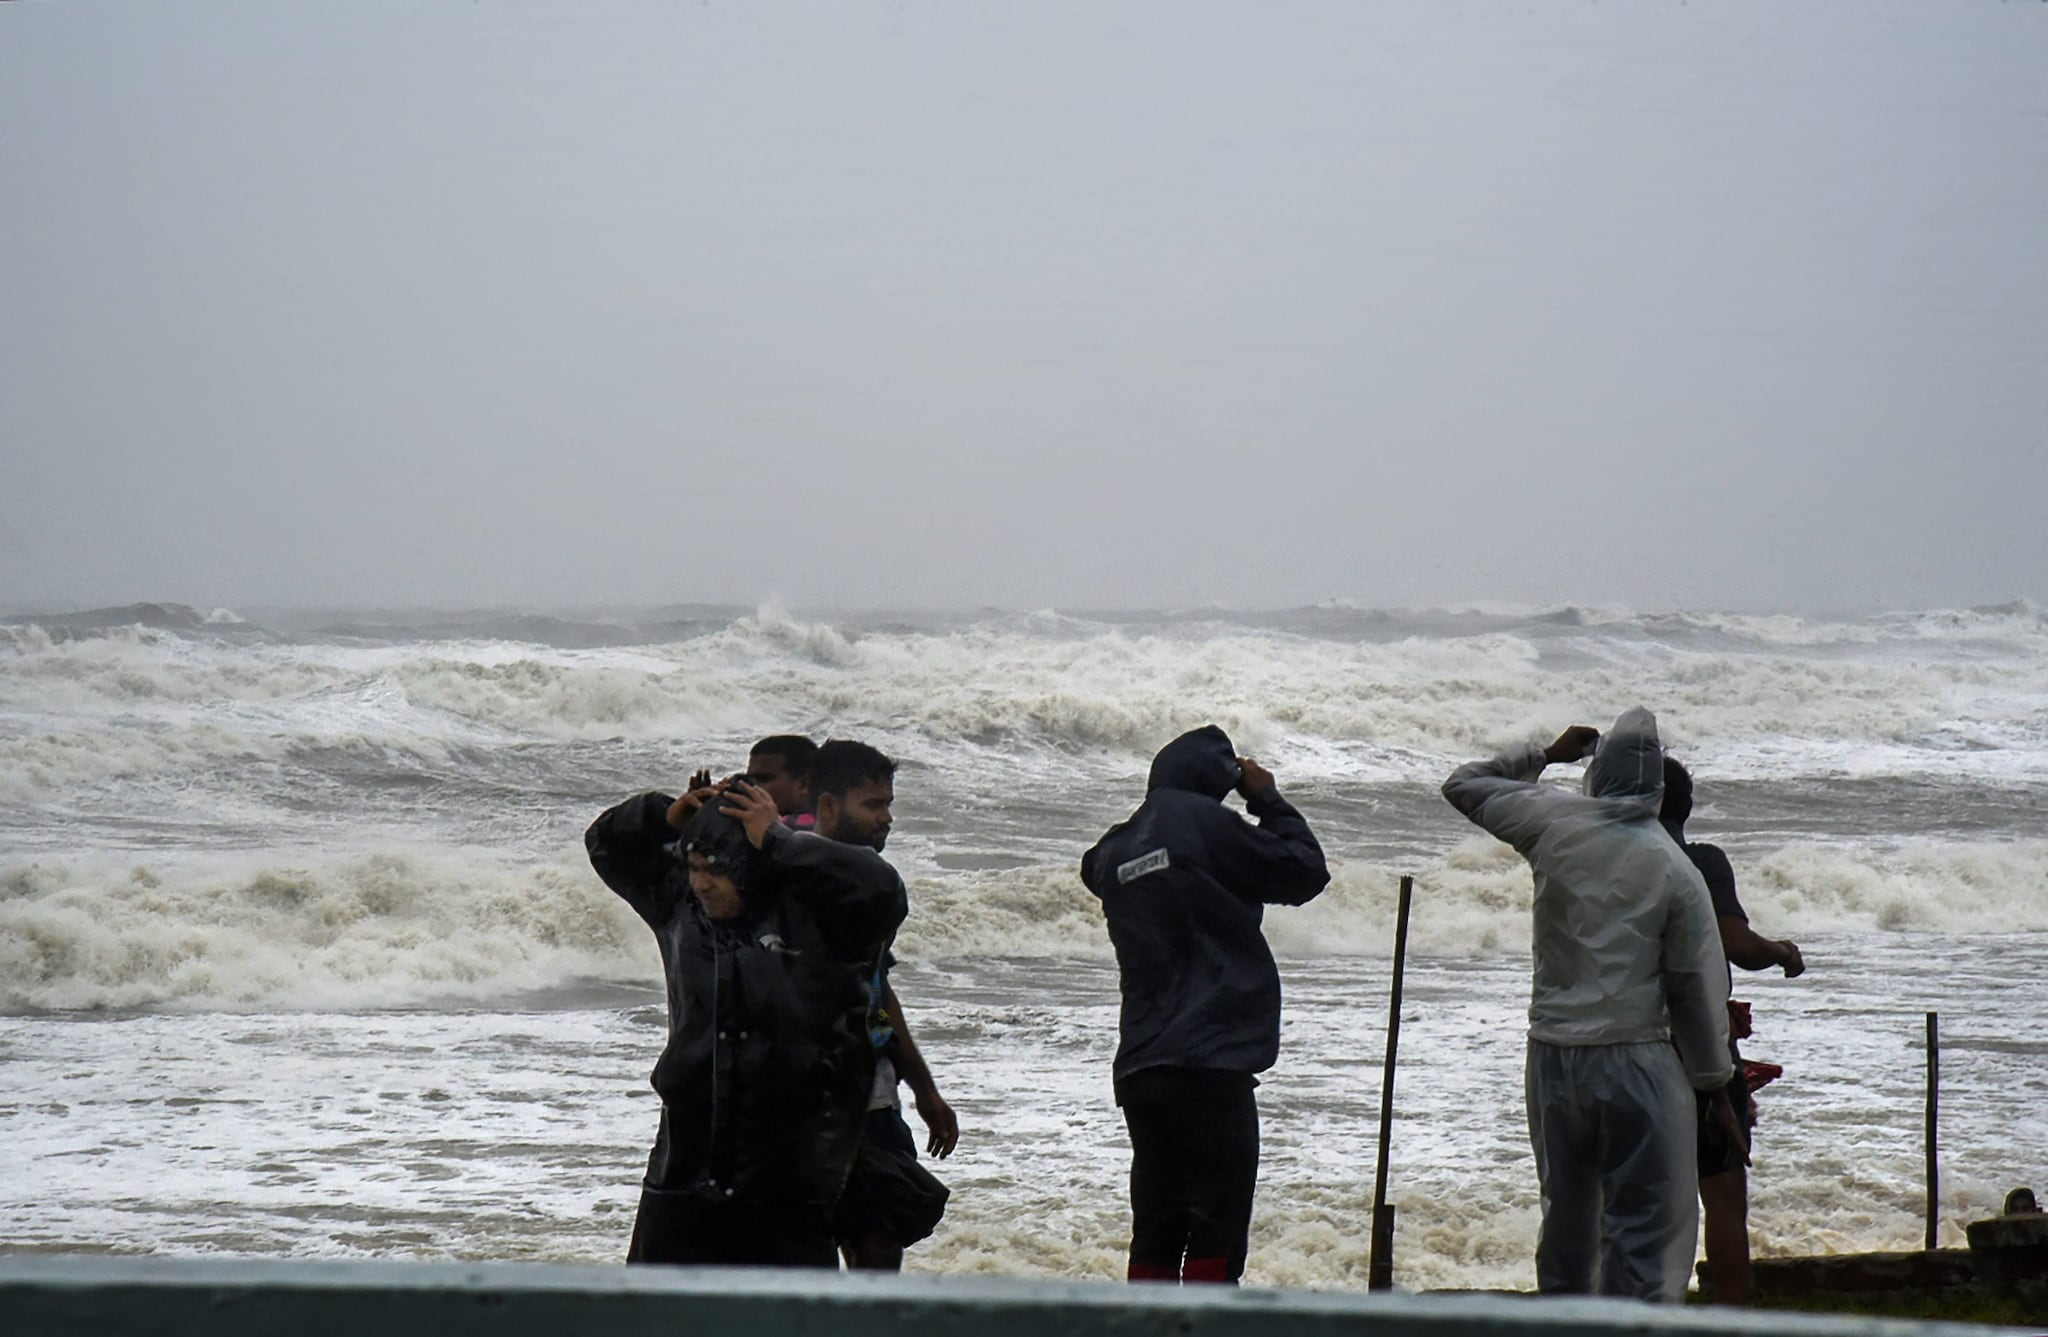 Ganjam: People look on as Cyclone Titli hits the city, starting with surface wind effect reaching speeds of 126 kmph at Gopalpur, in Ganjam, Thursday, Oct 11, 2018. (PTI)